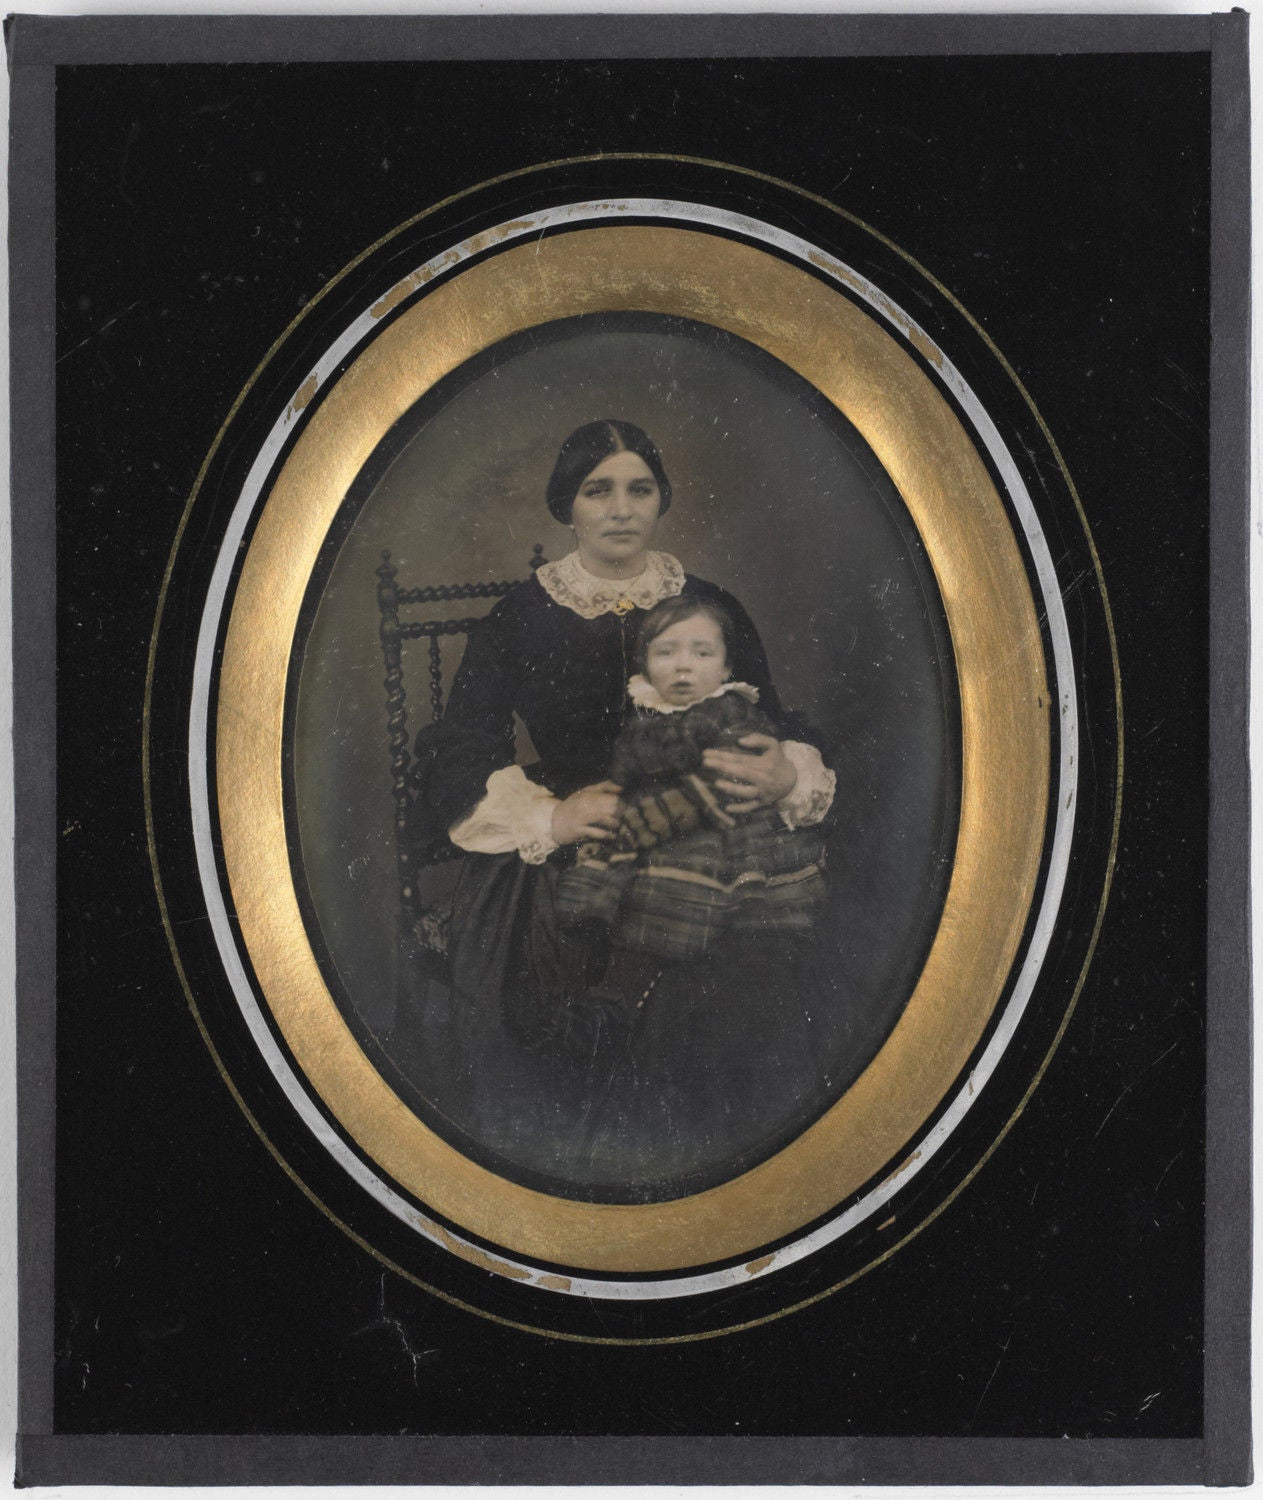 Image of B. Leba: Belgian daguerreotype of a mother and child, ca. 1855